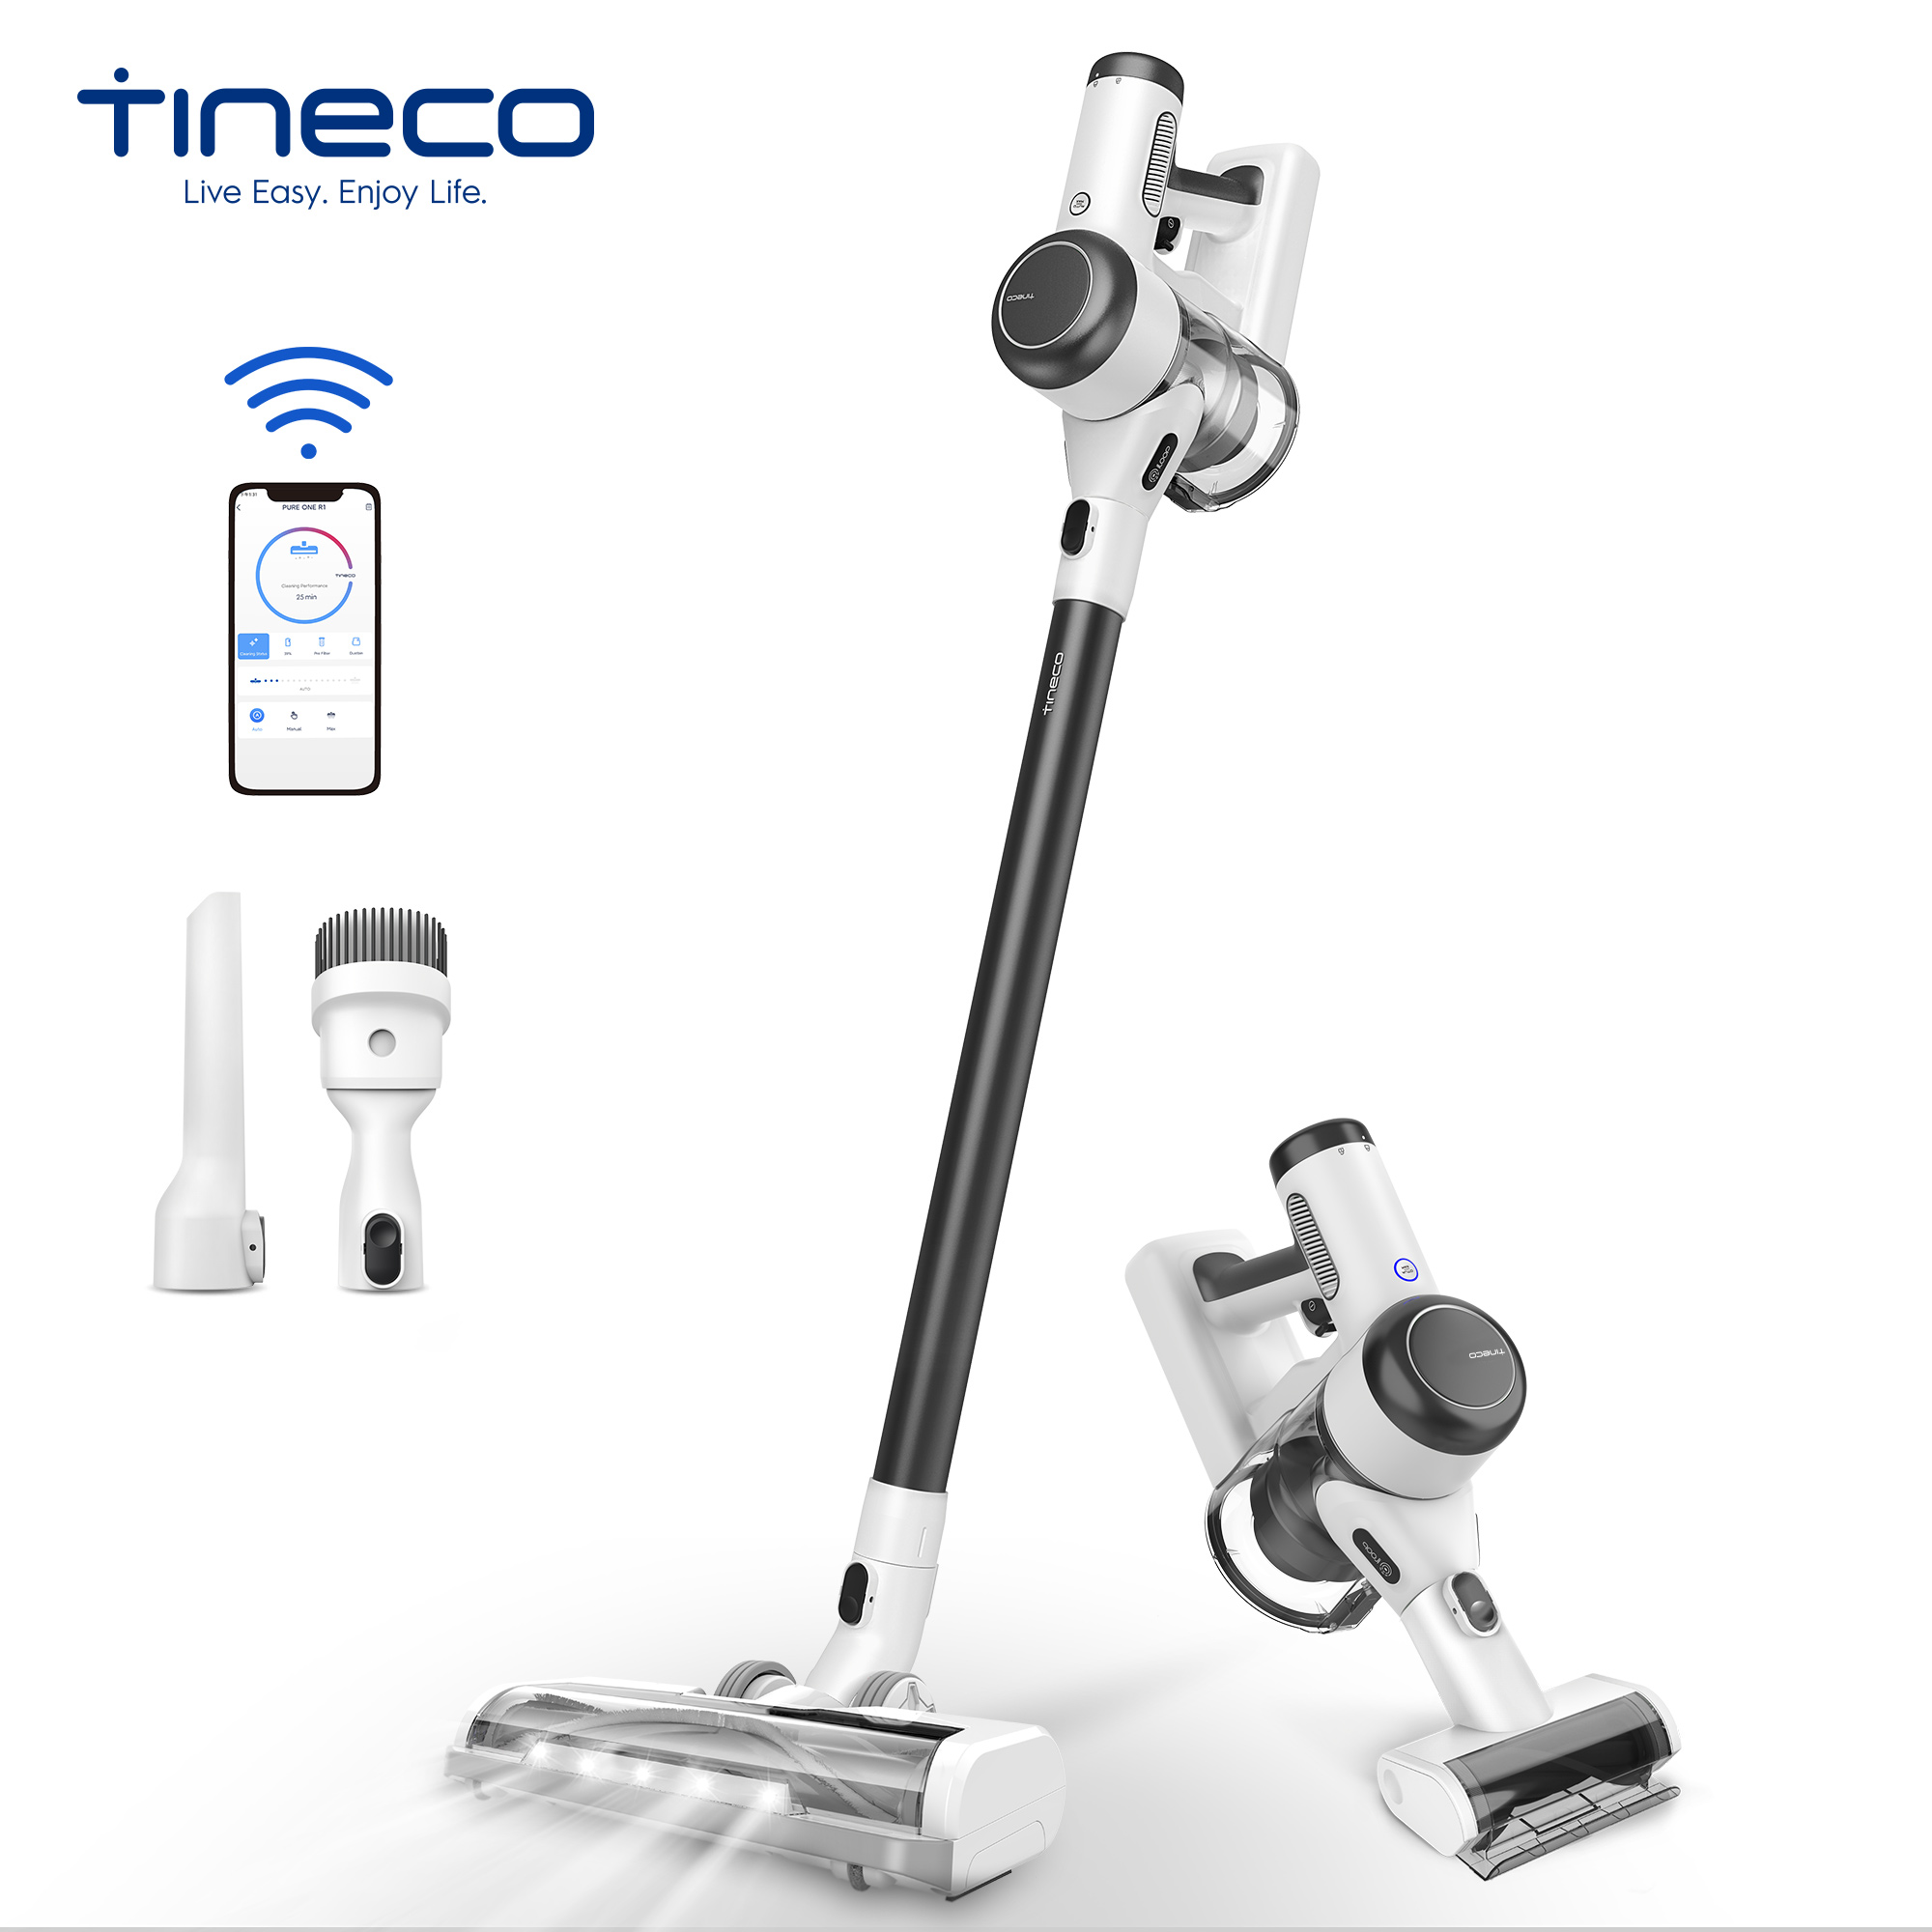 Tineco Pure One X Smart Cordless Vacuum Stick/Handled Auto-Adjust Suction For Home Long Runtime To 70-Minute